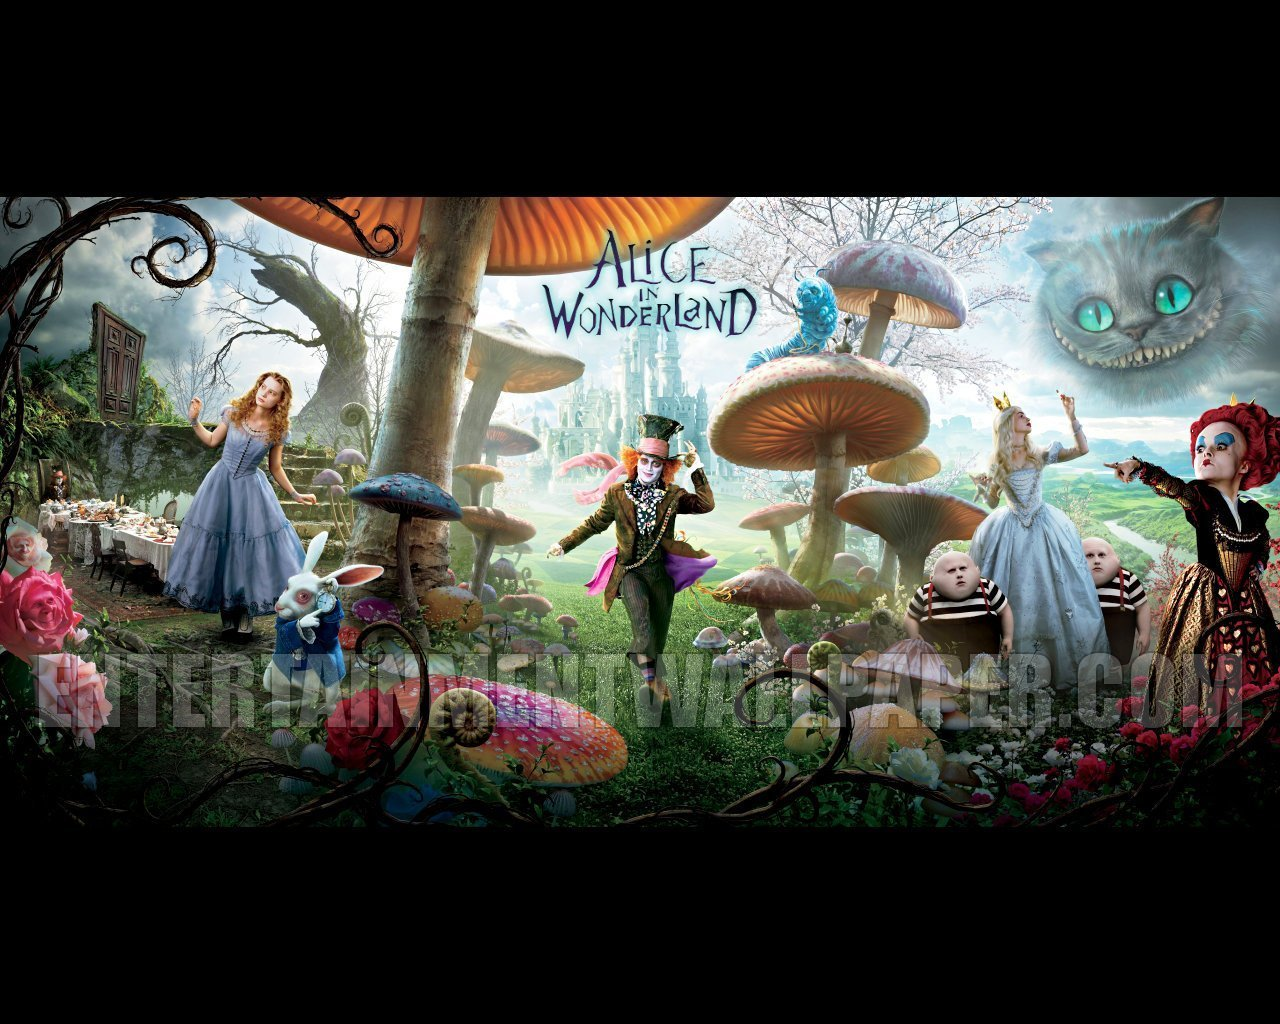 http://1.bp.blogspot.com/_Q7jFK4efdsI/S6wyVwCzEsI/AAAAAAAAAA8/NQ3Gu6_T3Uc/s1600/Alice-in-Wonderland-2010-upcoming-movies-9873630-1280-1024.jpg